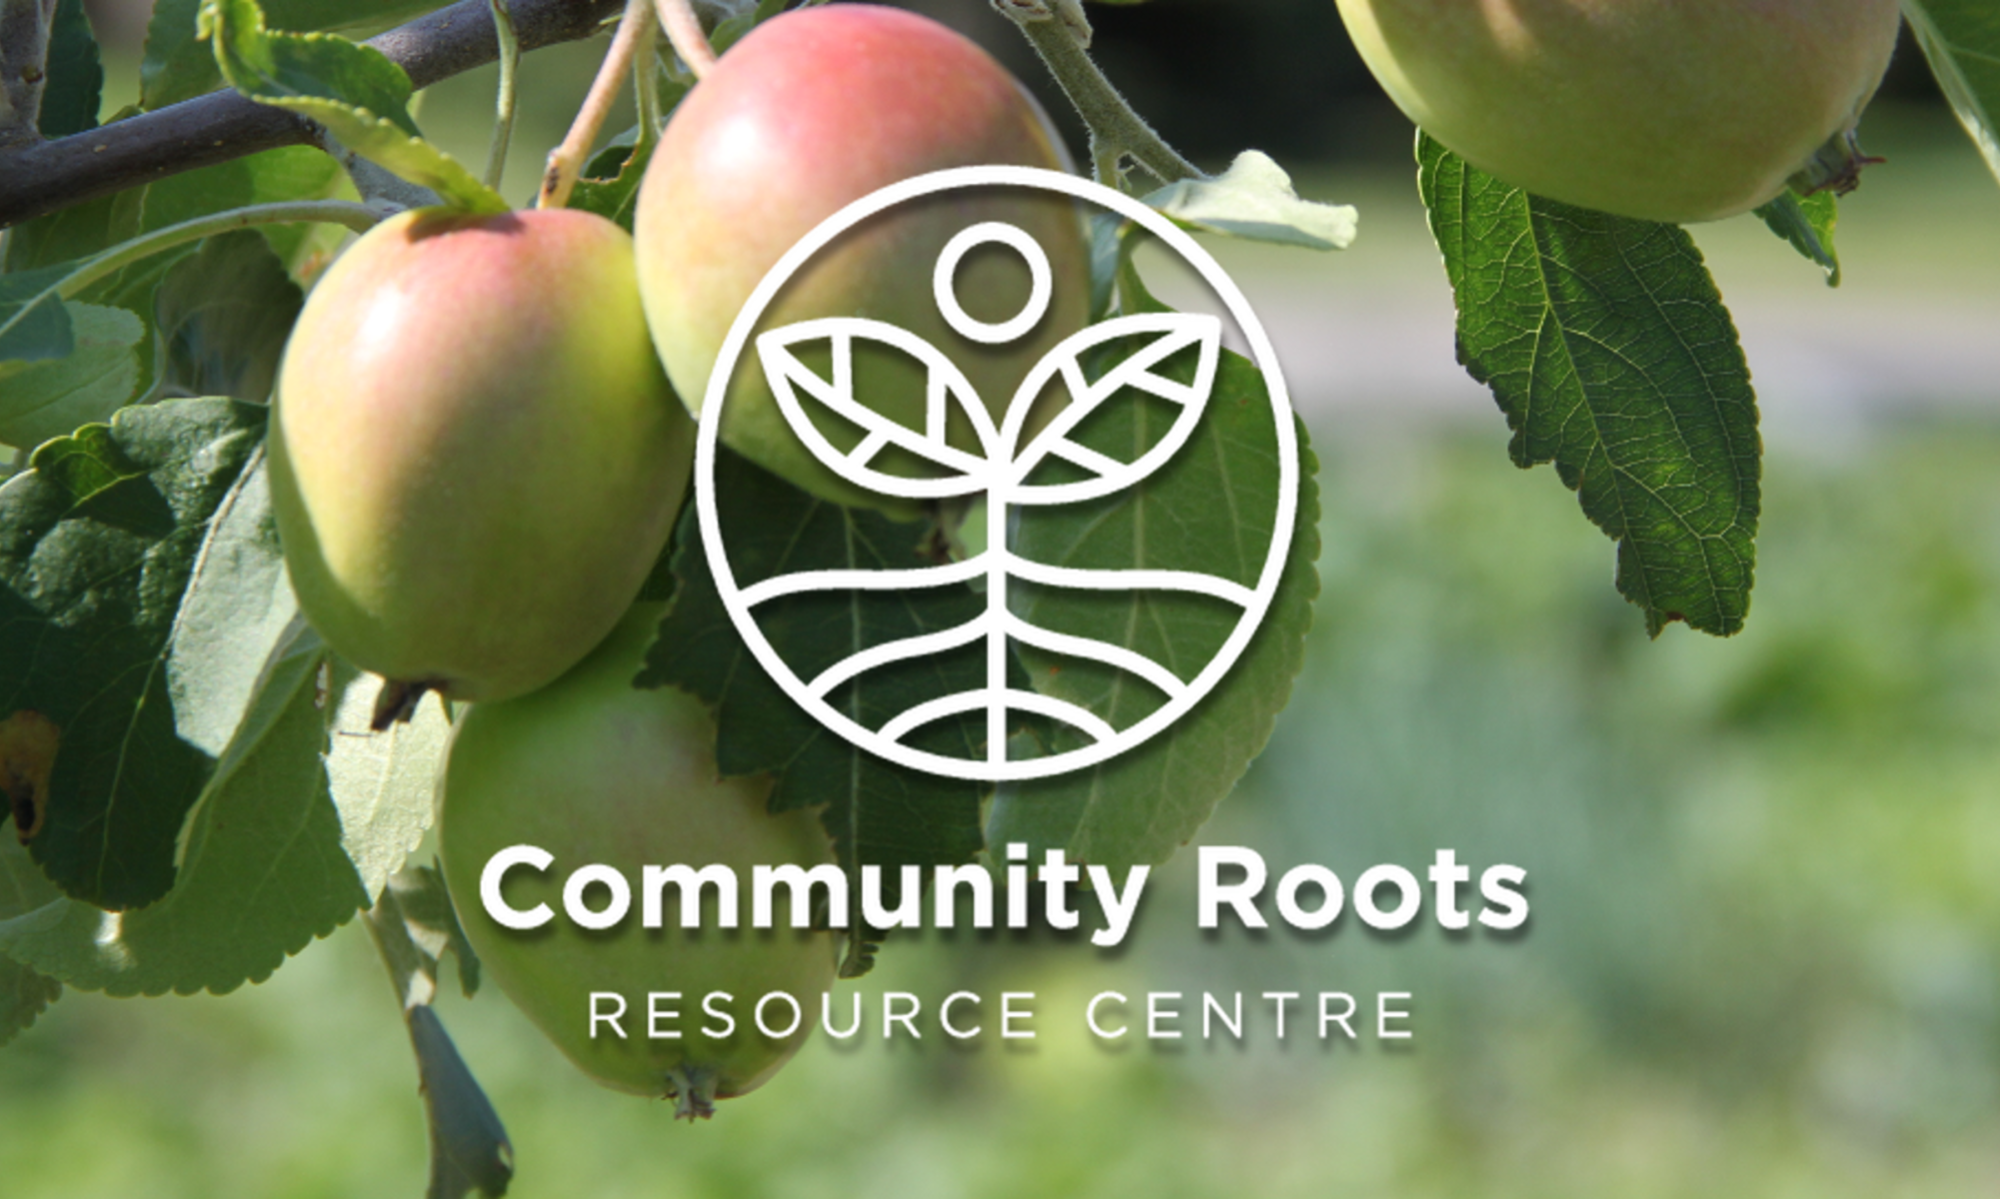 Community Roots Resource Centre